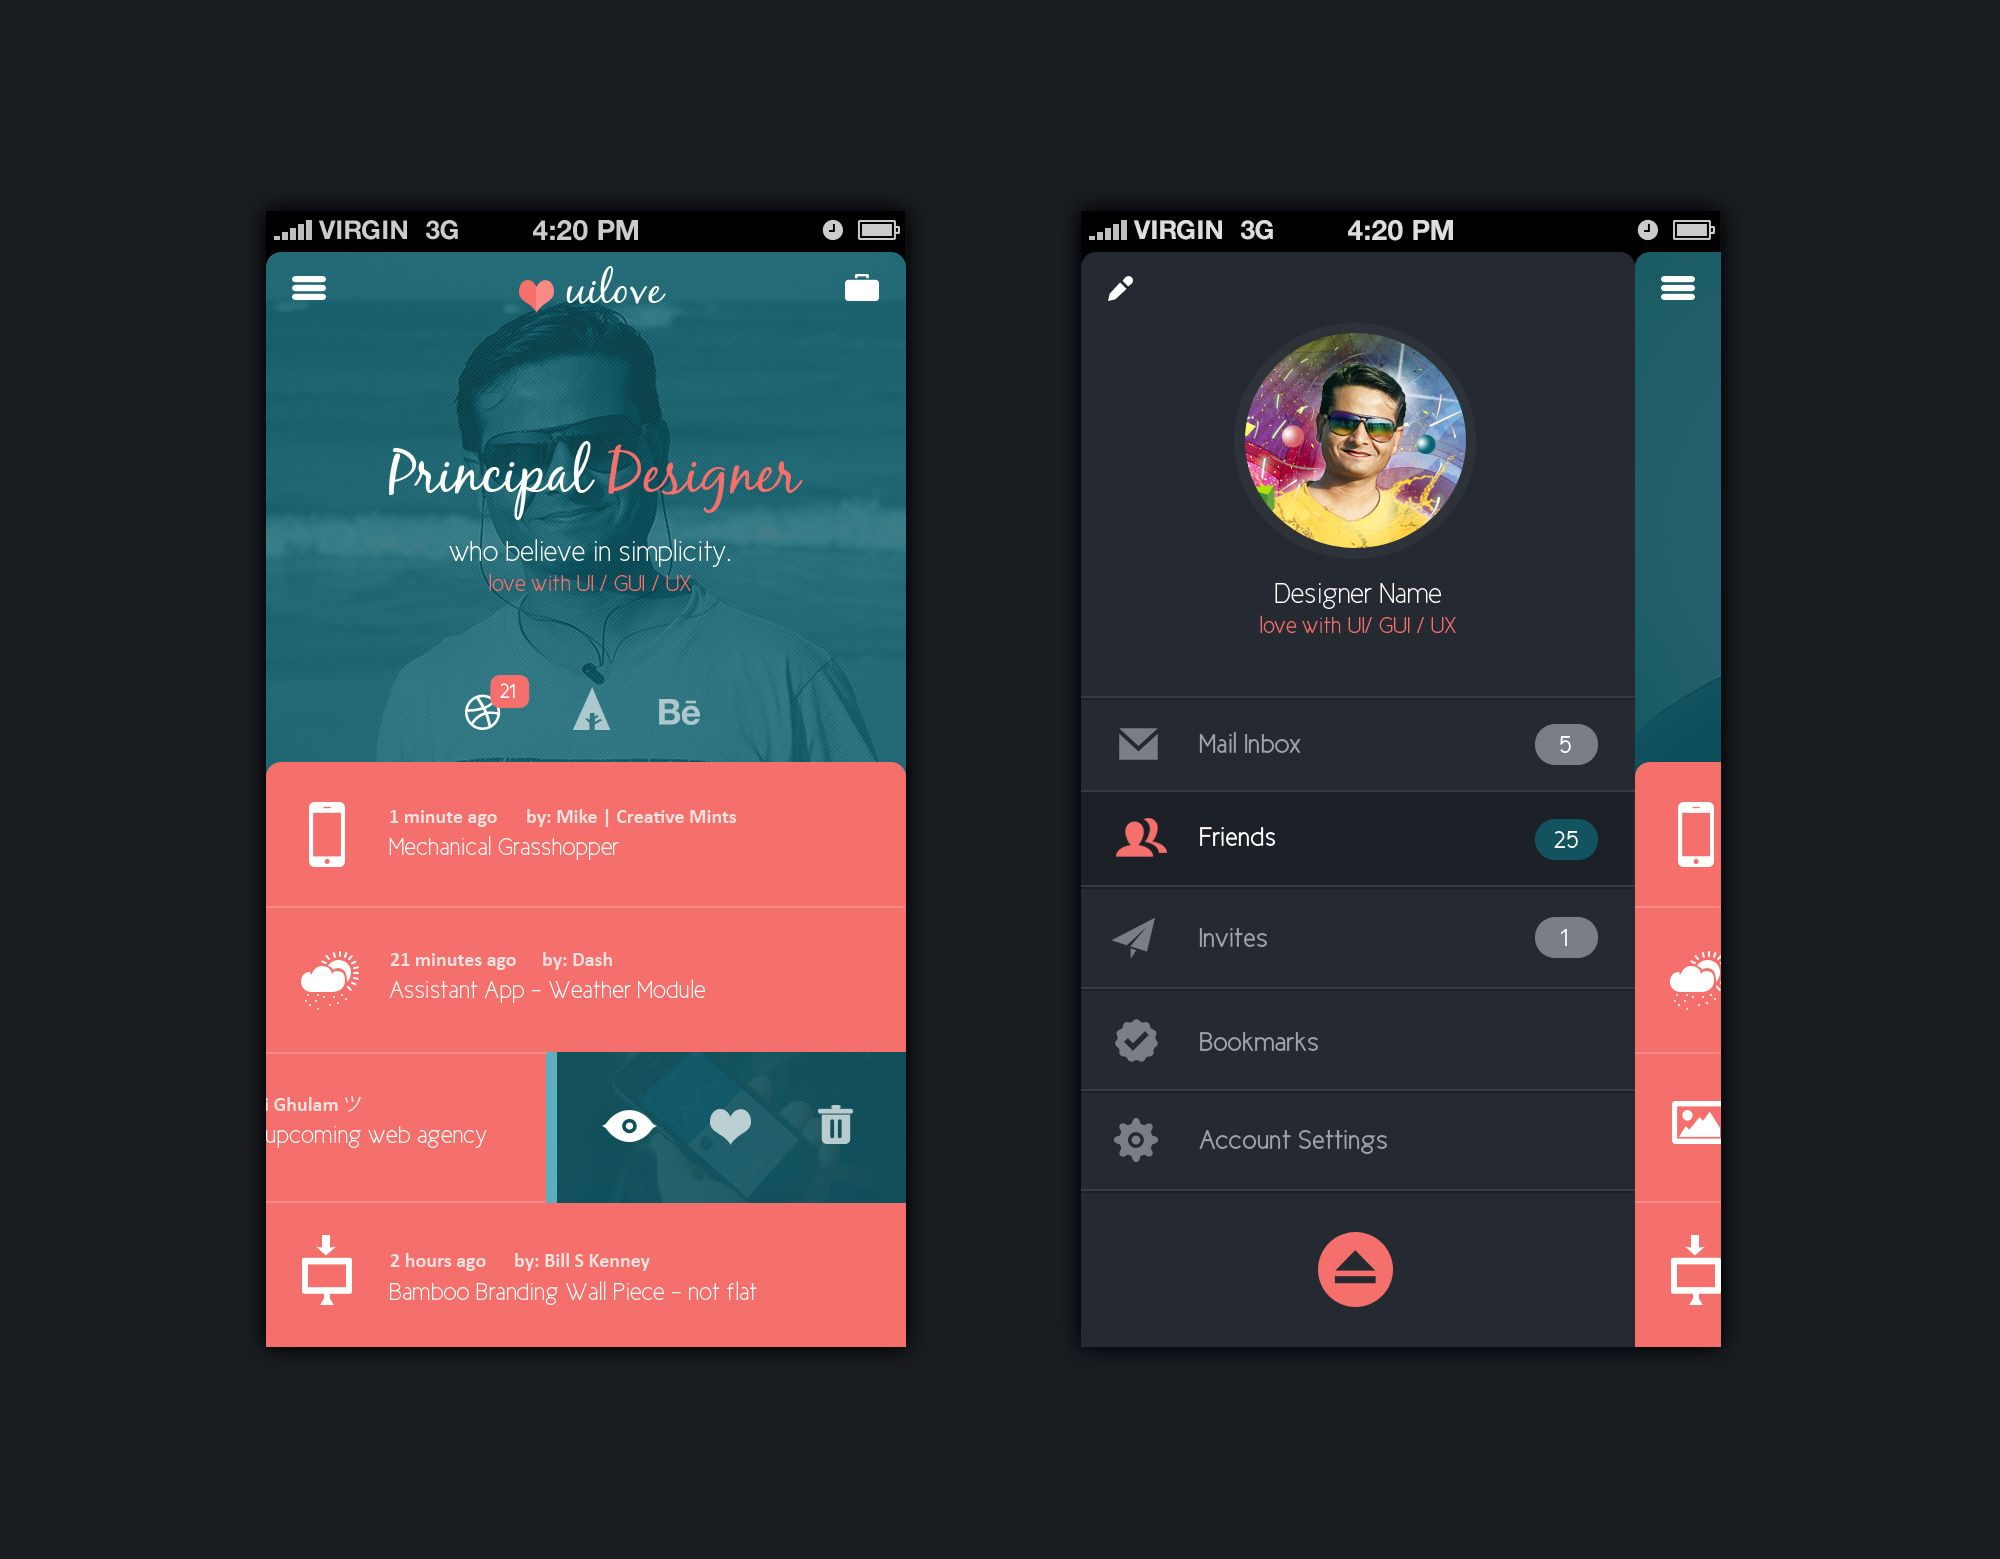 69 best images about Mobile Interfaces - Social Dating on Pinterest